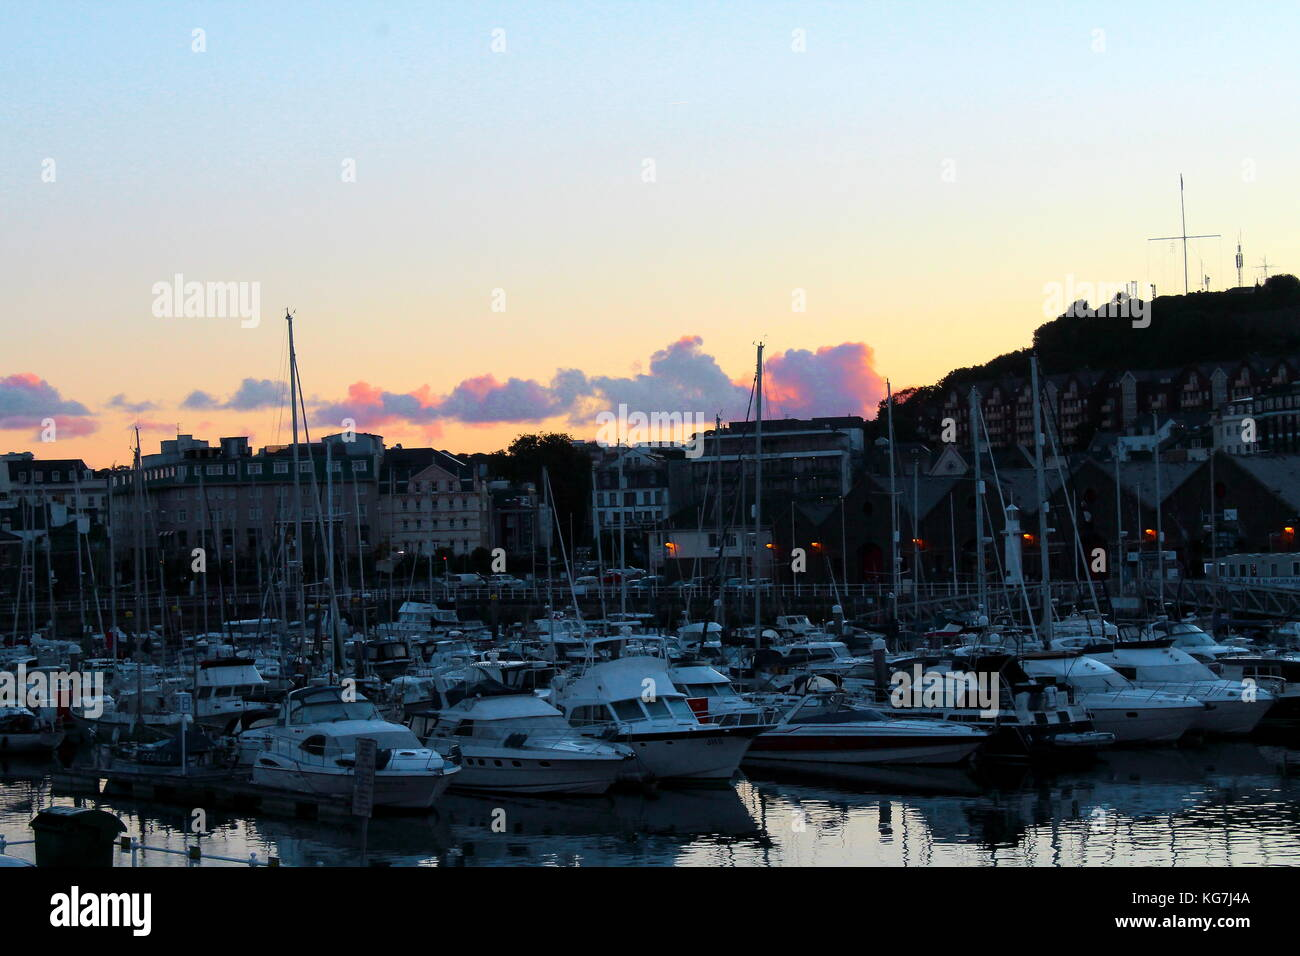 St Helier Harbour at Sunrise - Stock Image